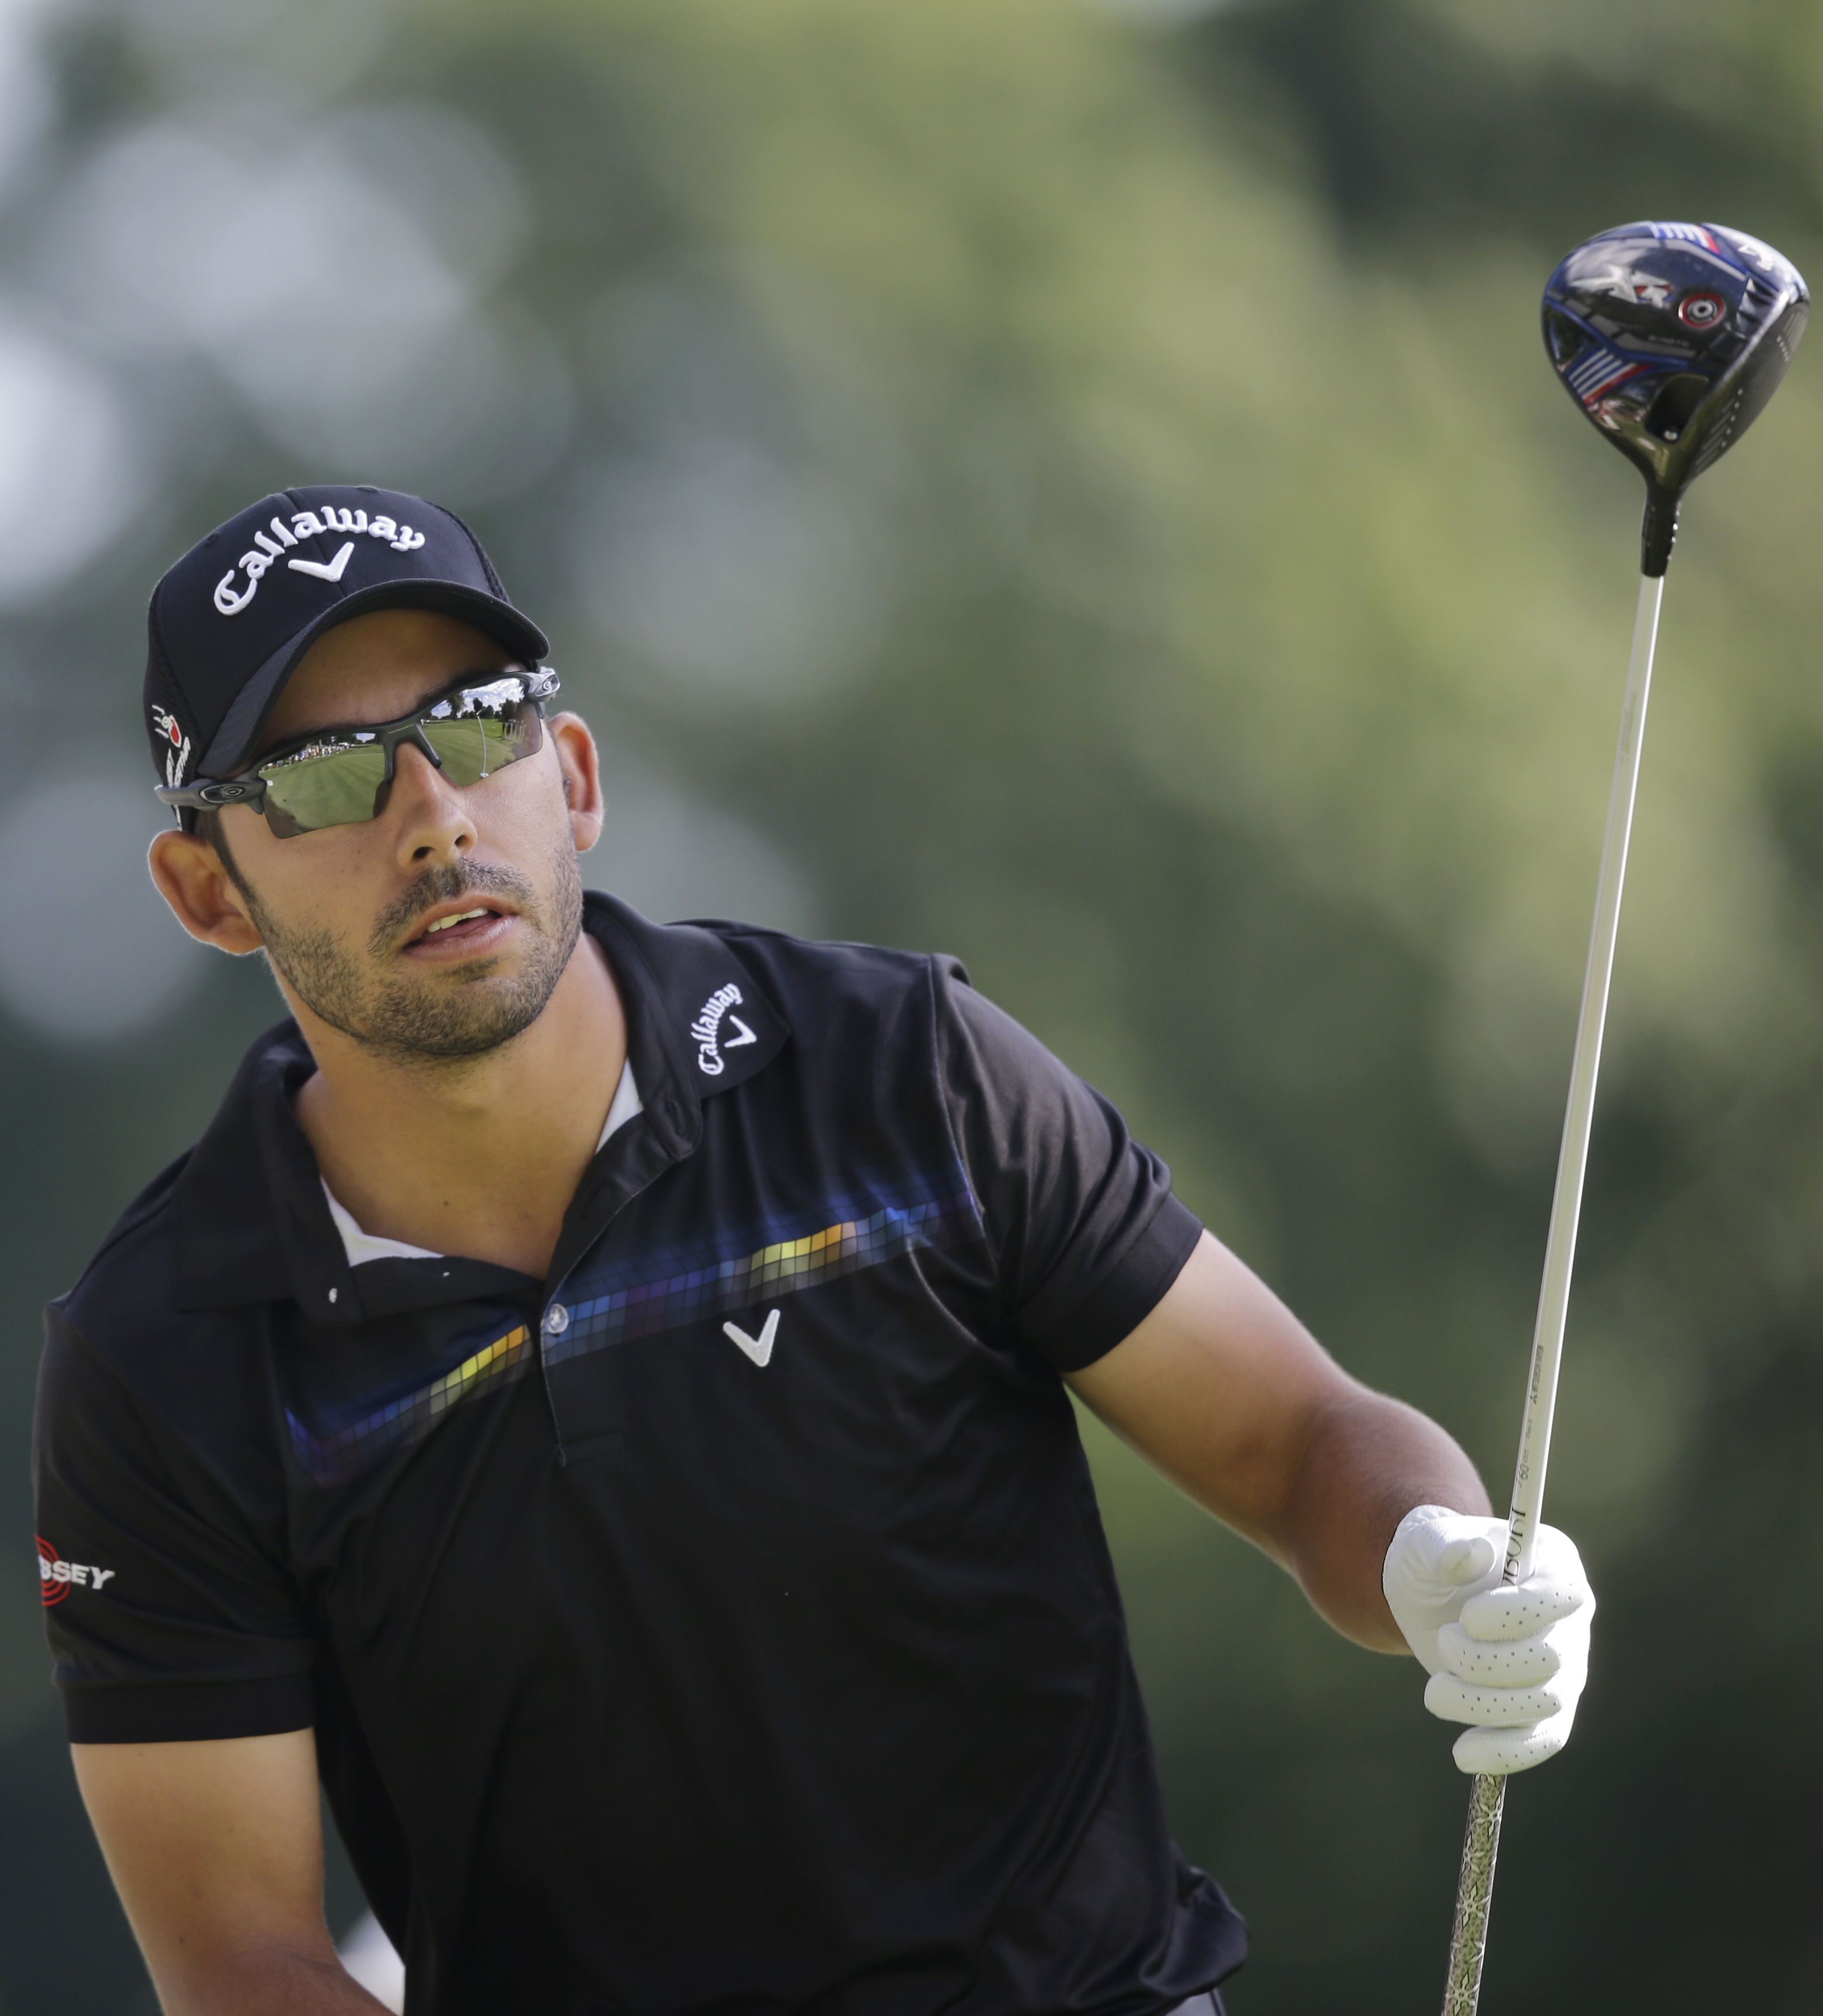 Pablo Larrazabal, from Spain, tees off on the 11th hole during the second round of the Bridgestone Invitational golf tournament at Firestone Country Club, Friday, Aug. 7, 2015, in Akron, Ohio. (AP Photo/Tony Dejak)